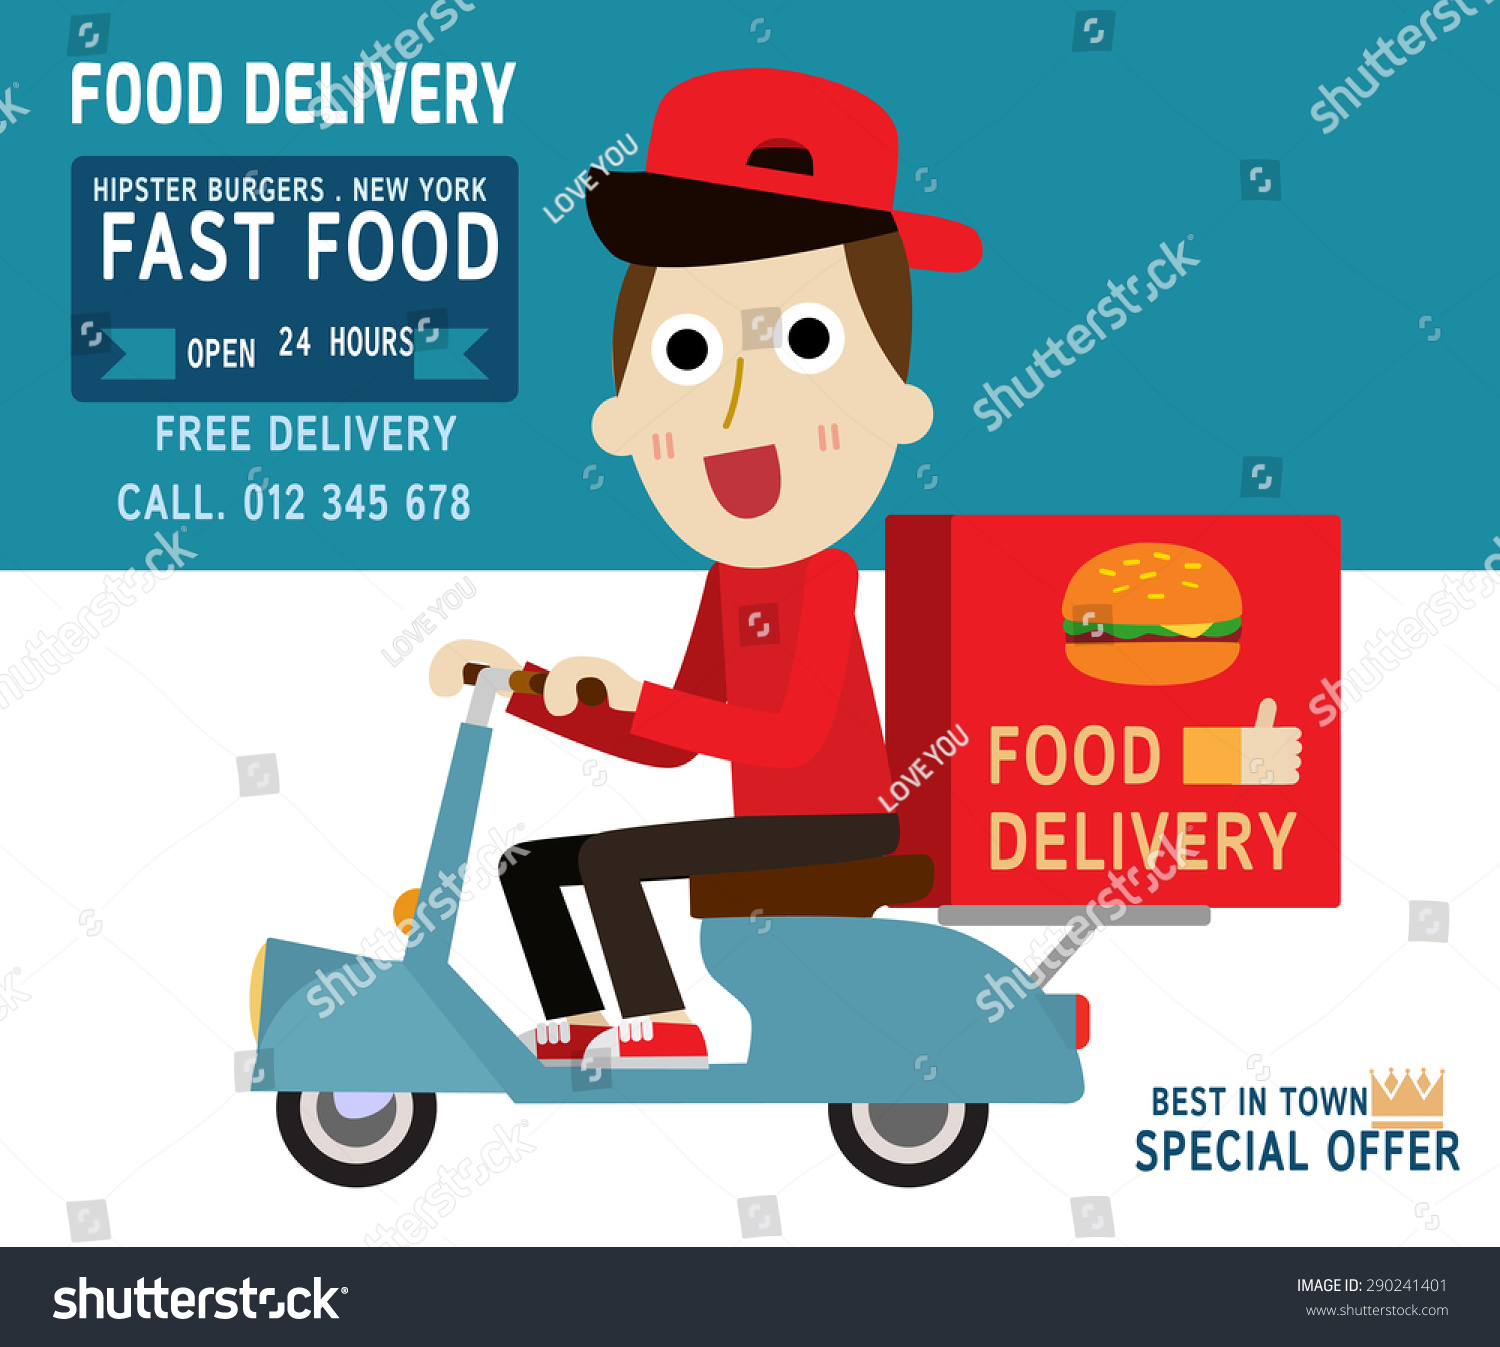 Fast food home delivery business model